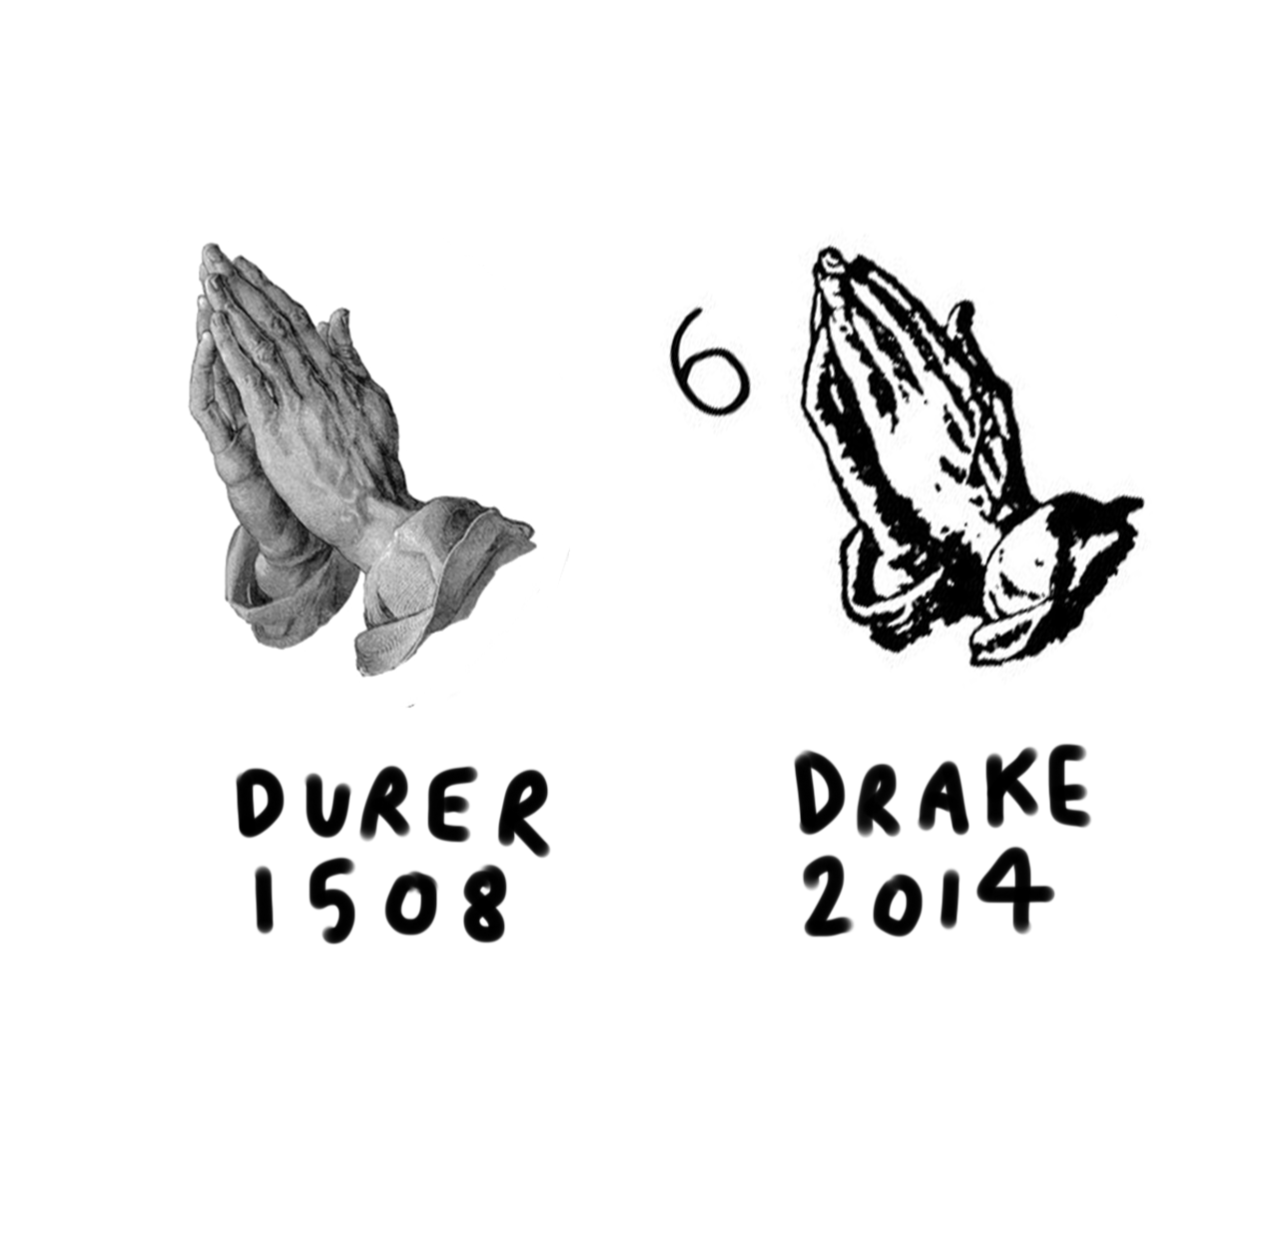 Left: A. Durer Praying hands (removed from background) 1508 / Right: Drake 6 artwork 2014/2015